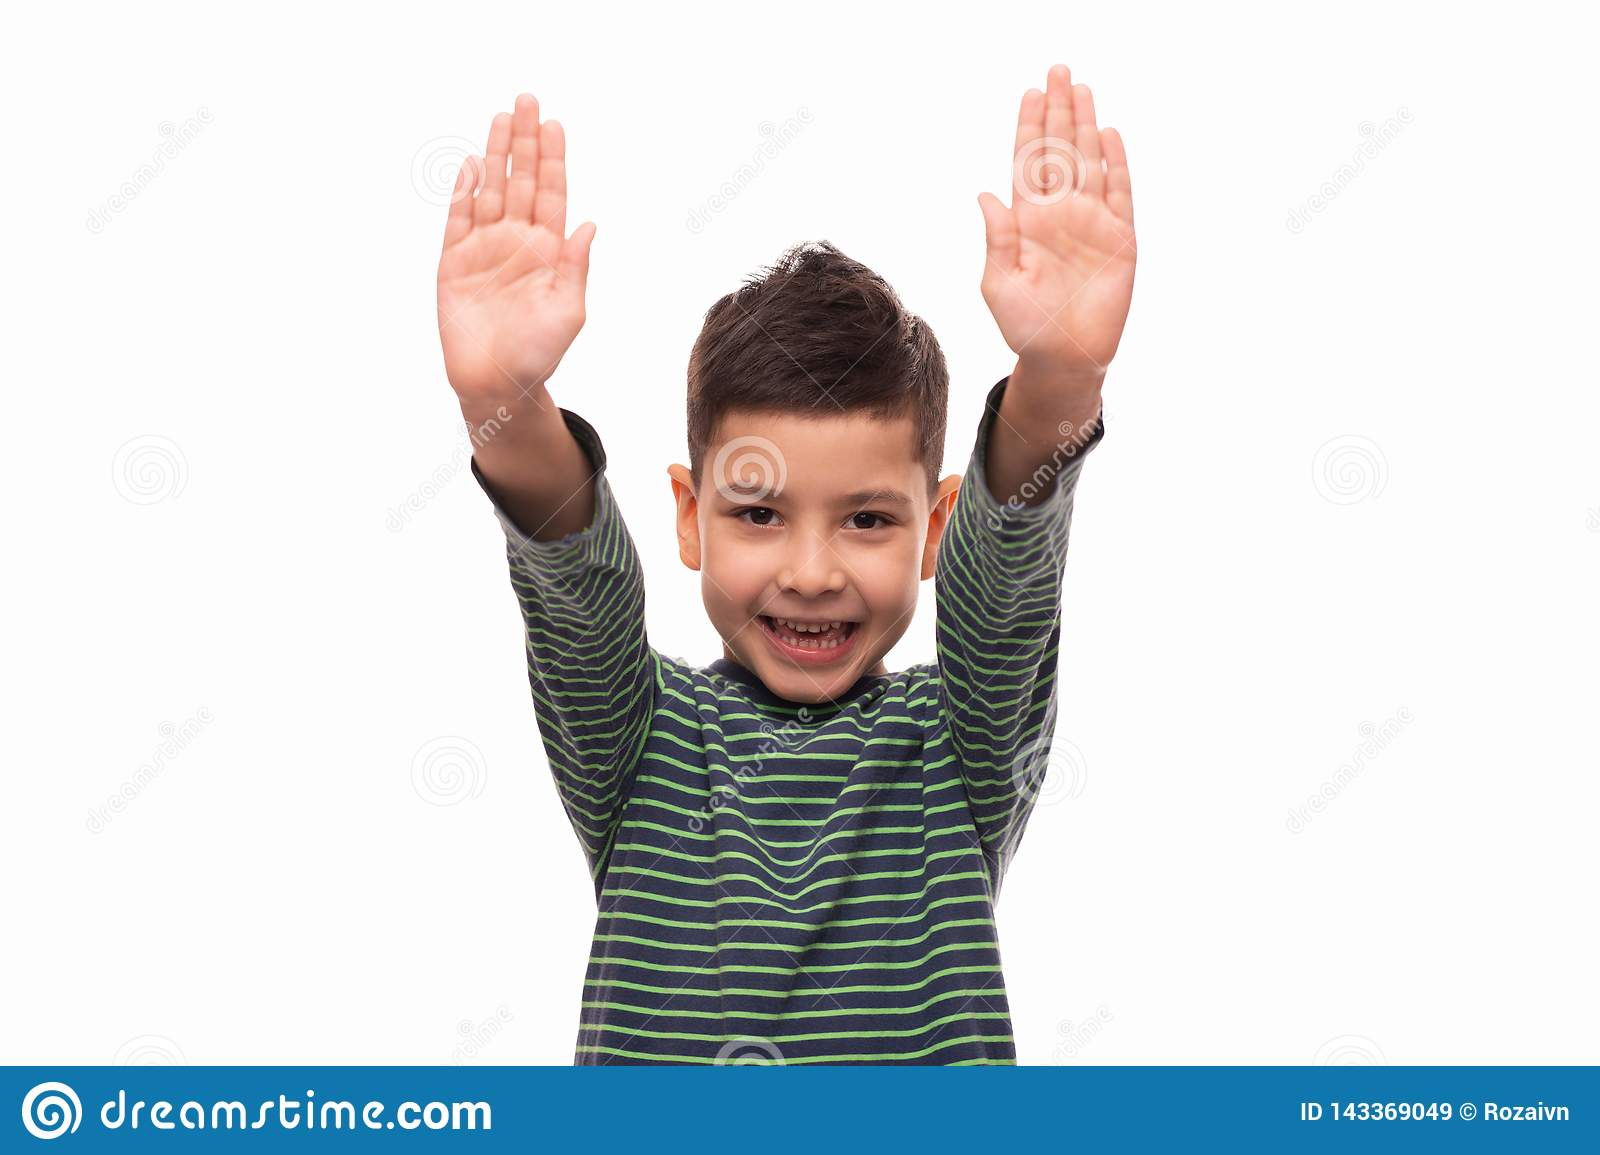 Studio shot of a young smiling boy wearing green striped shirt standing with his hands raised, isolated with copy space